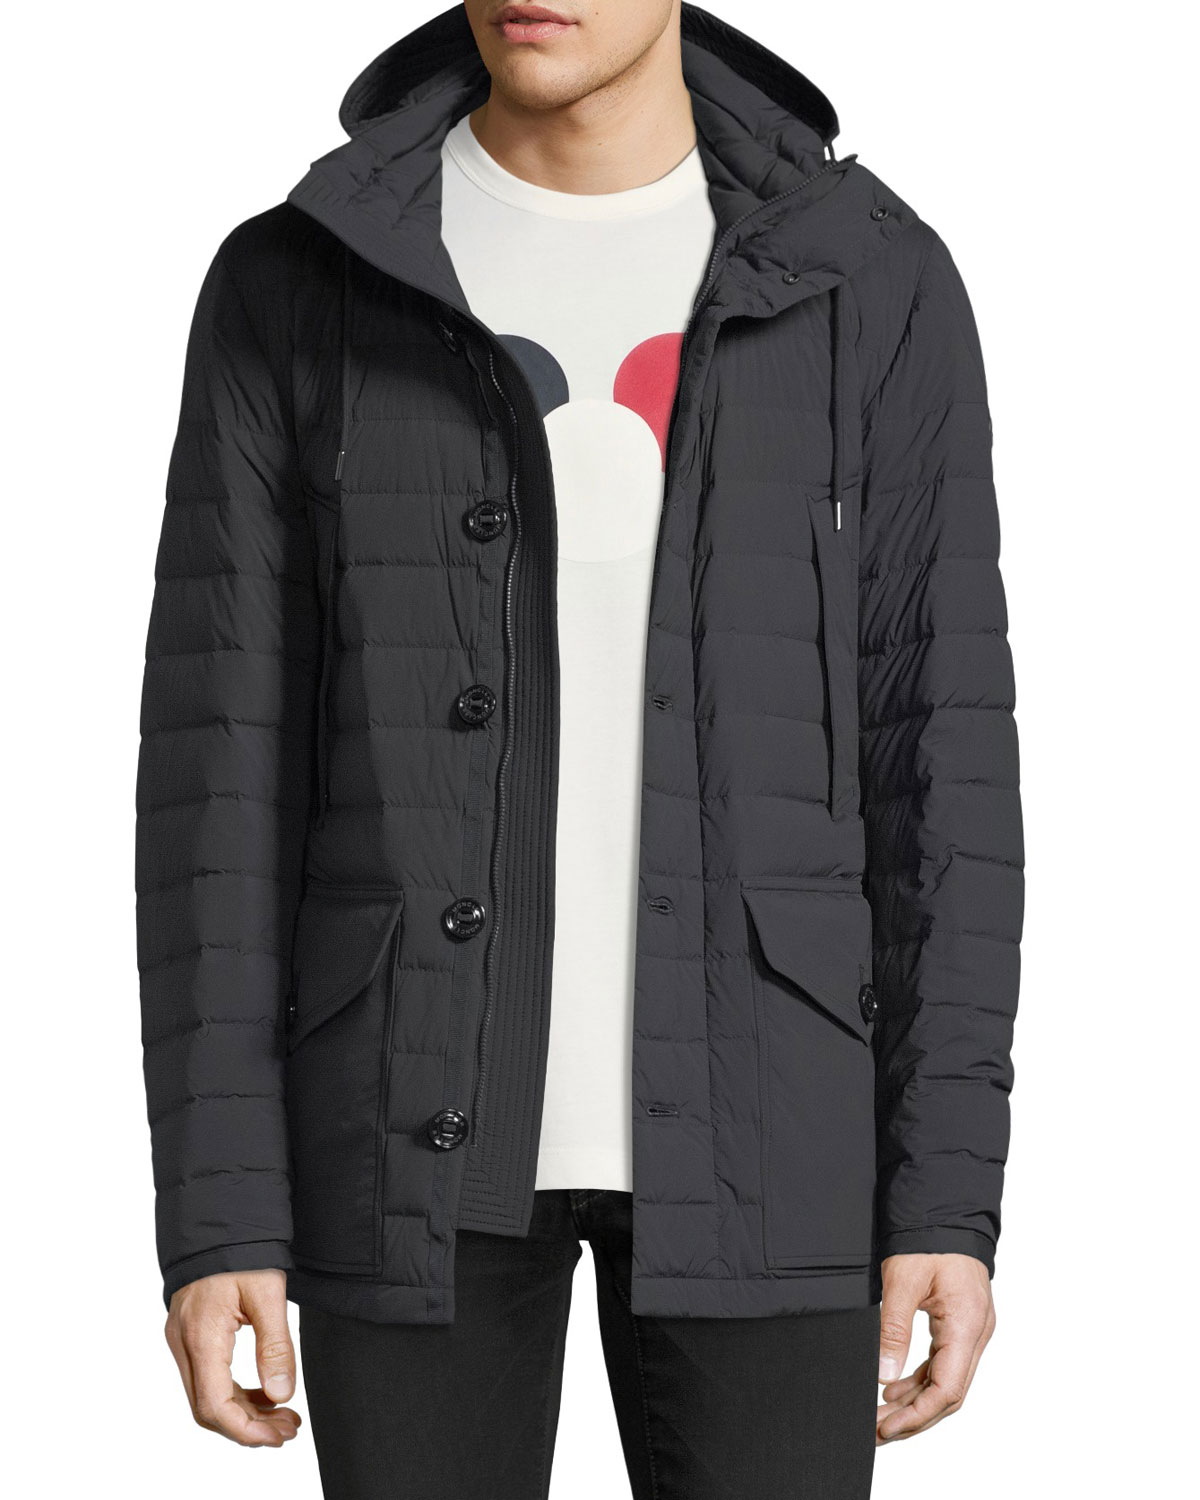 45b4a6479842 Moncler Hooded Jacket   Neiman Marcus